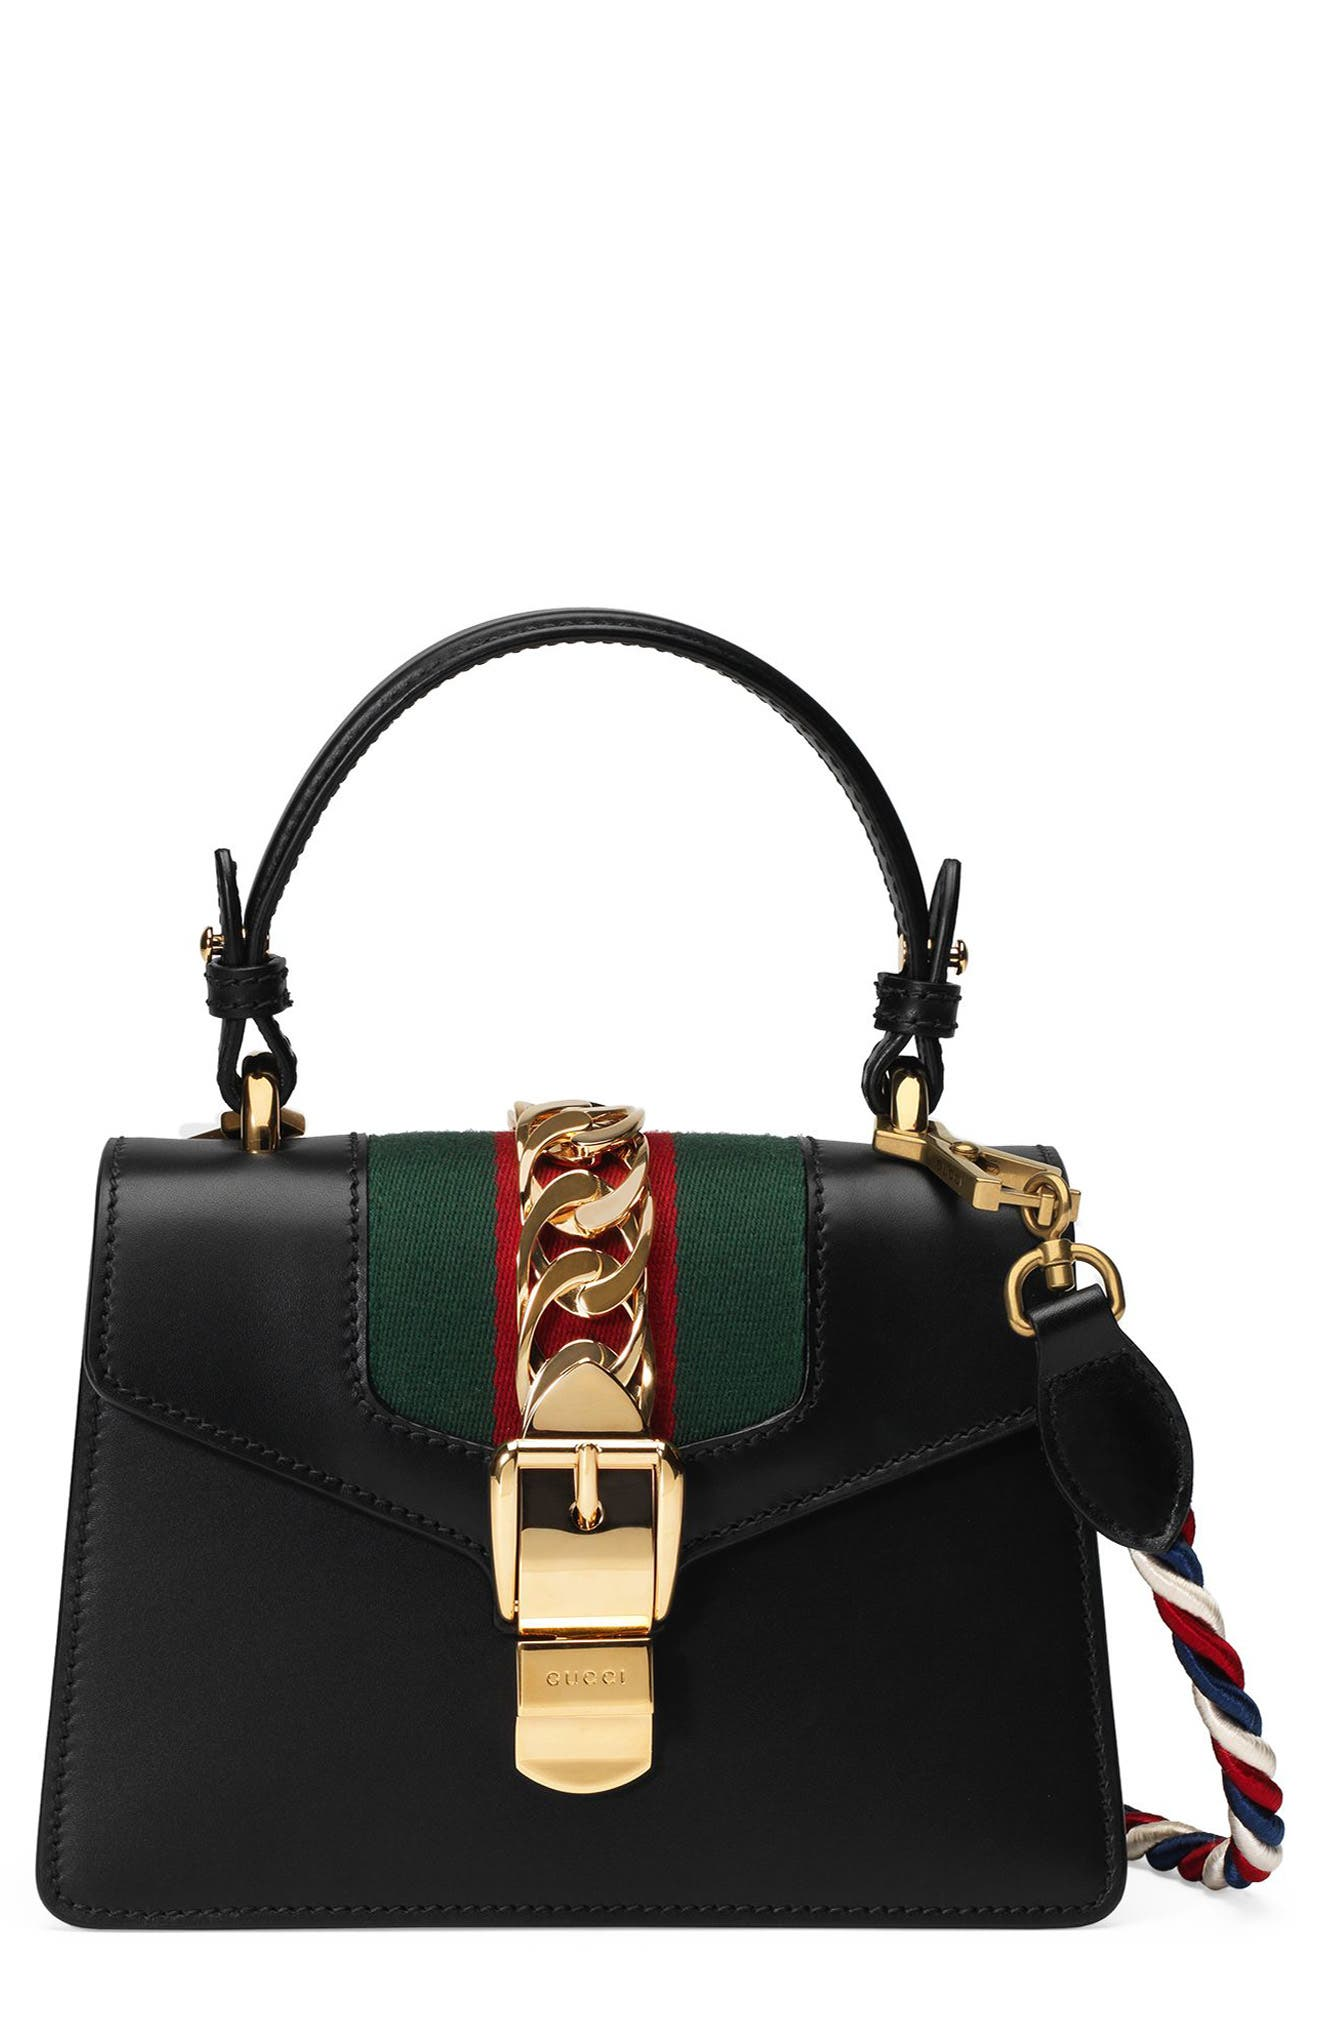 Main Image - Gucci Mini Sylvie Top Handle Leather Shoulder Bag